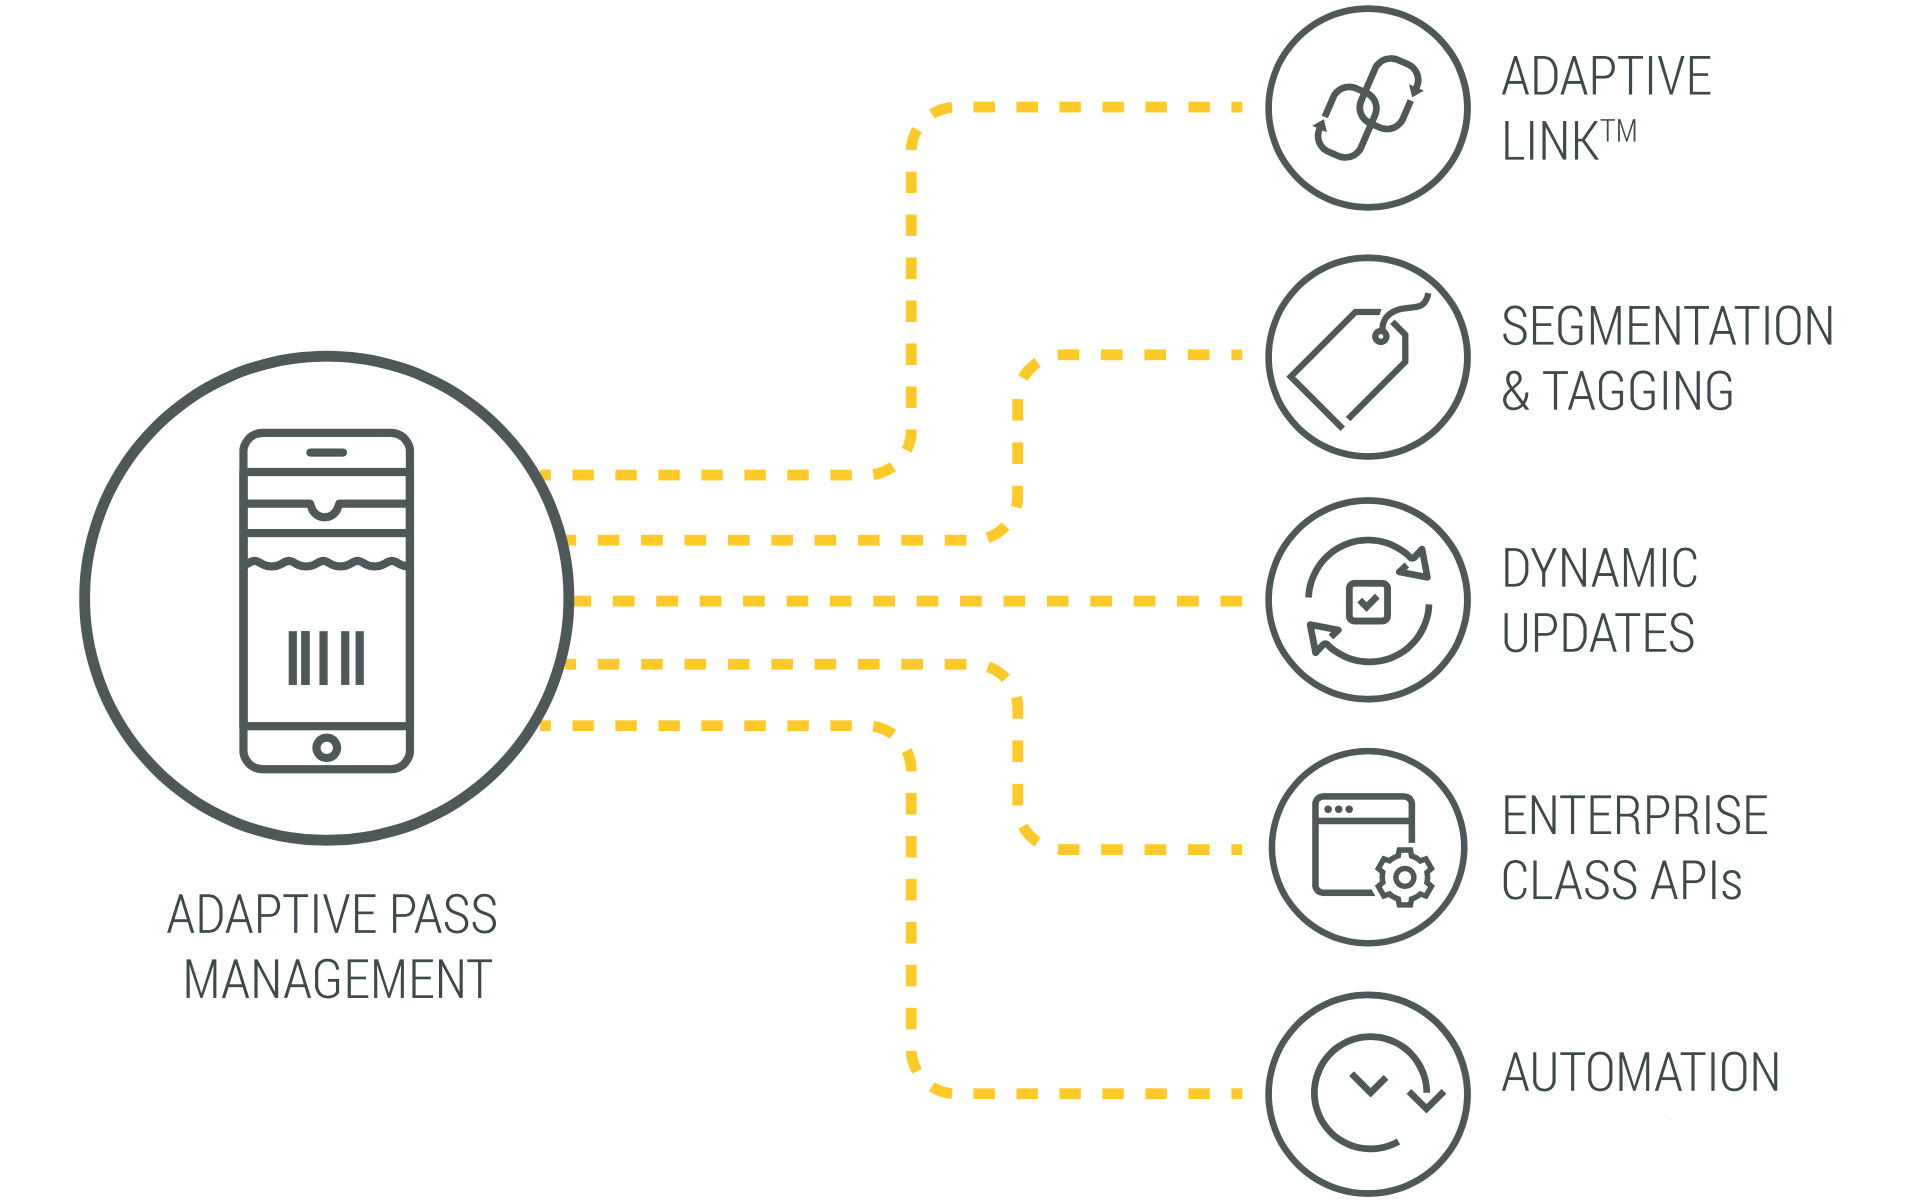 wallet-pass-innovations-adaptive-wallet-pass-management-solution.png